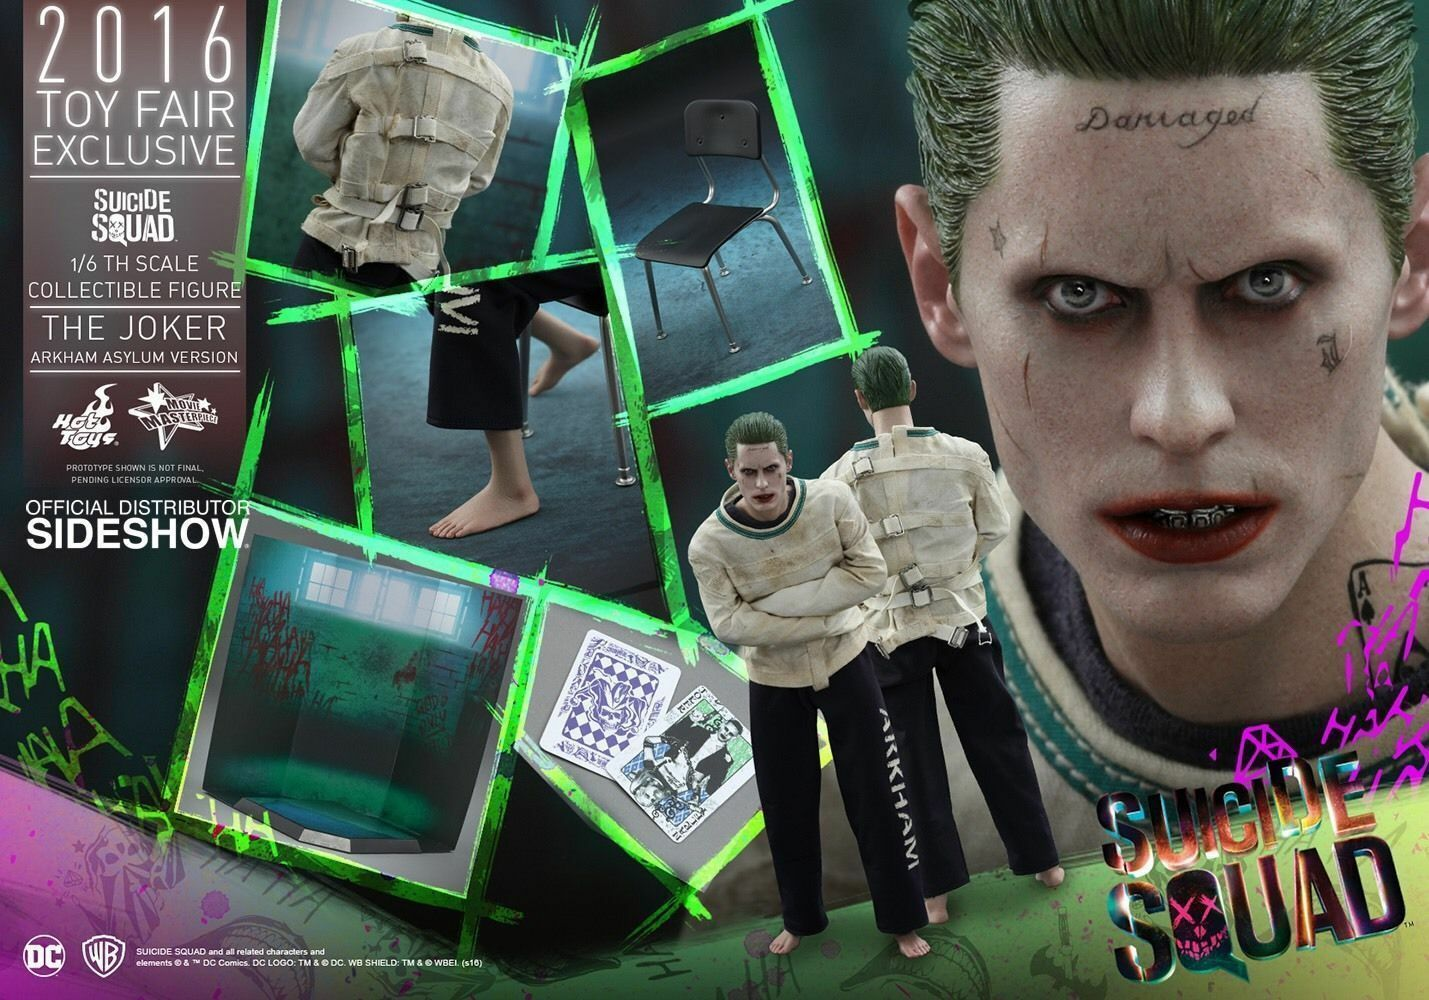 Hot Toys Suicide Squad The Joker MMS373 Arkham Asylum Ver Toy Fair EXCLUSIVE